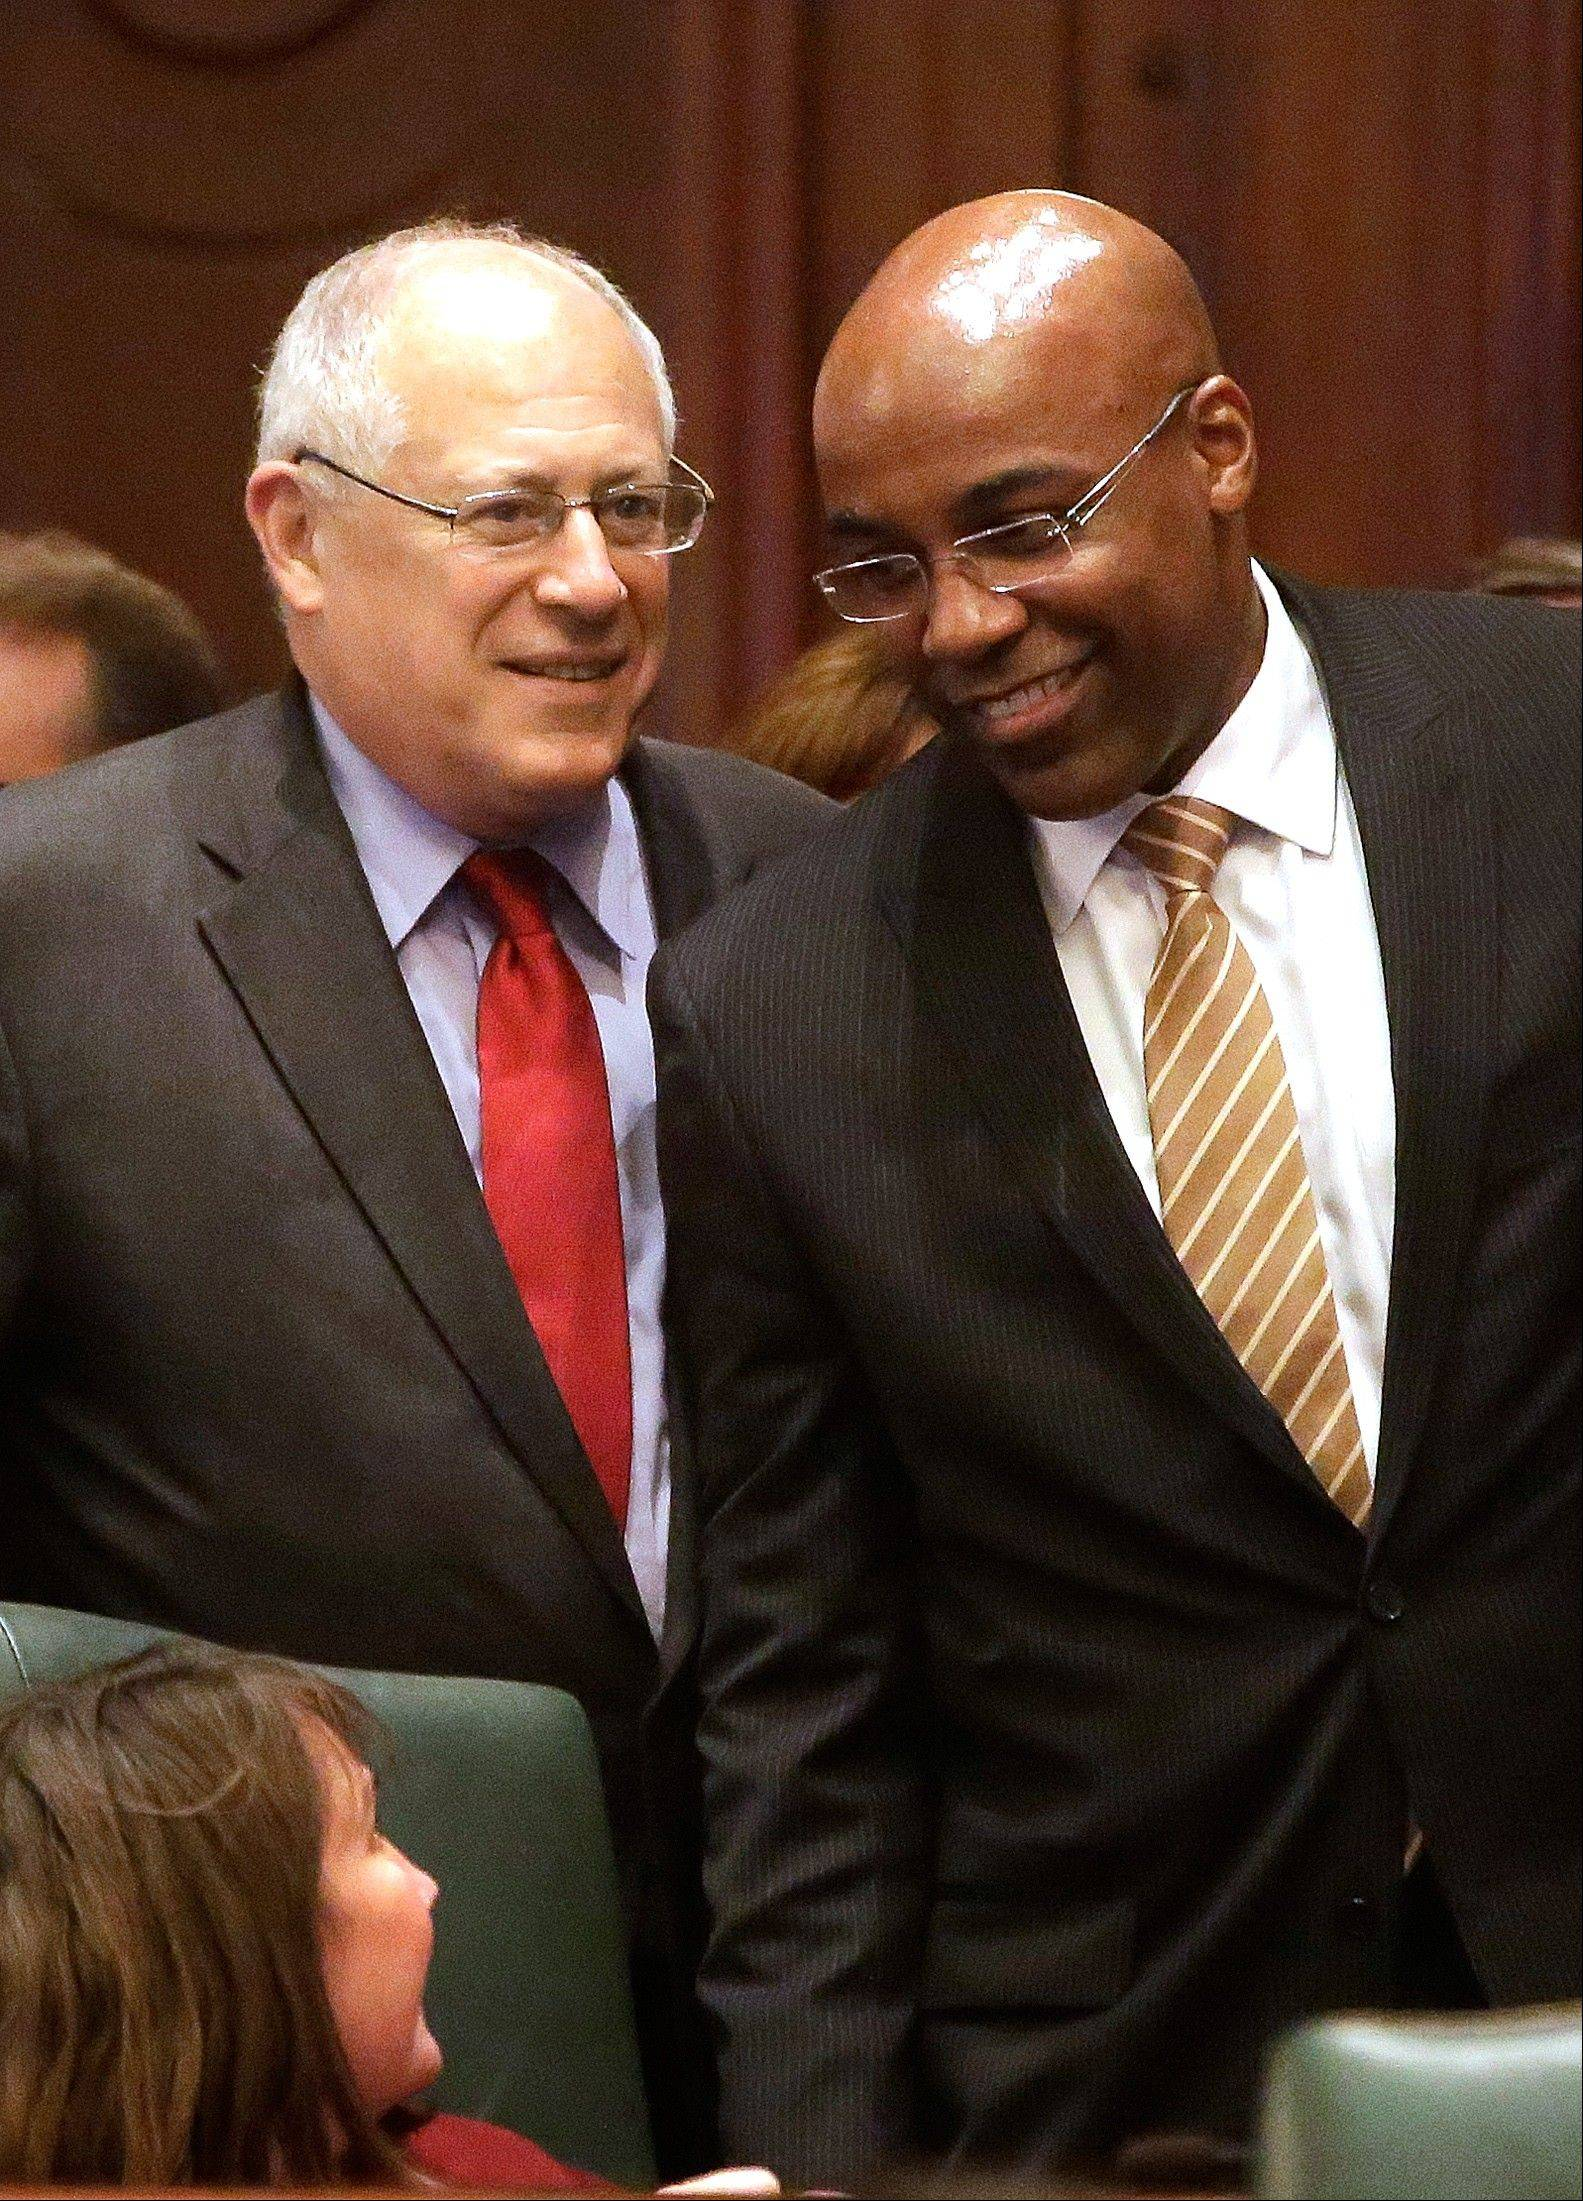 Illinois Gov. Pat Quinn, left, and Illinois Sen. Kwame Raoul, D-Chicago, right, look on as gay marriage legislation passes on the House floor during veto session Tuesday, Nov. 5, 2013 in Springfield Ill.